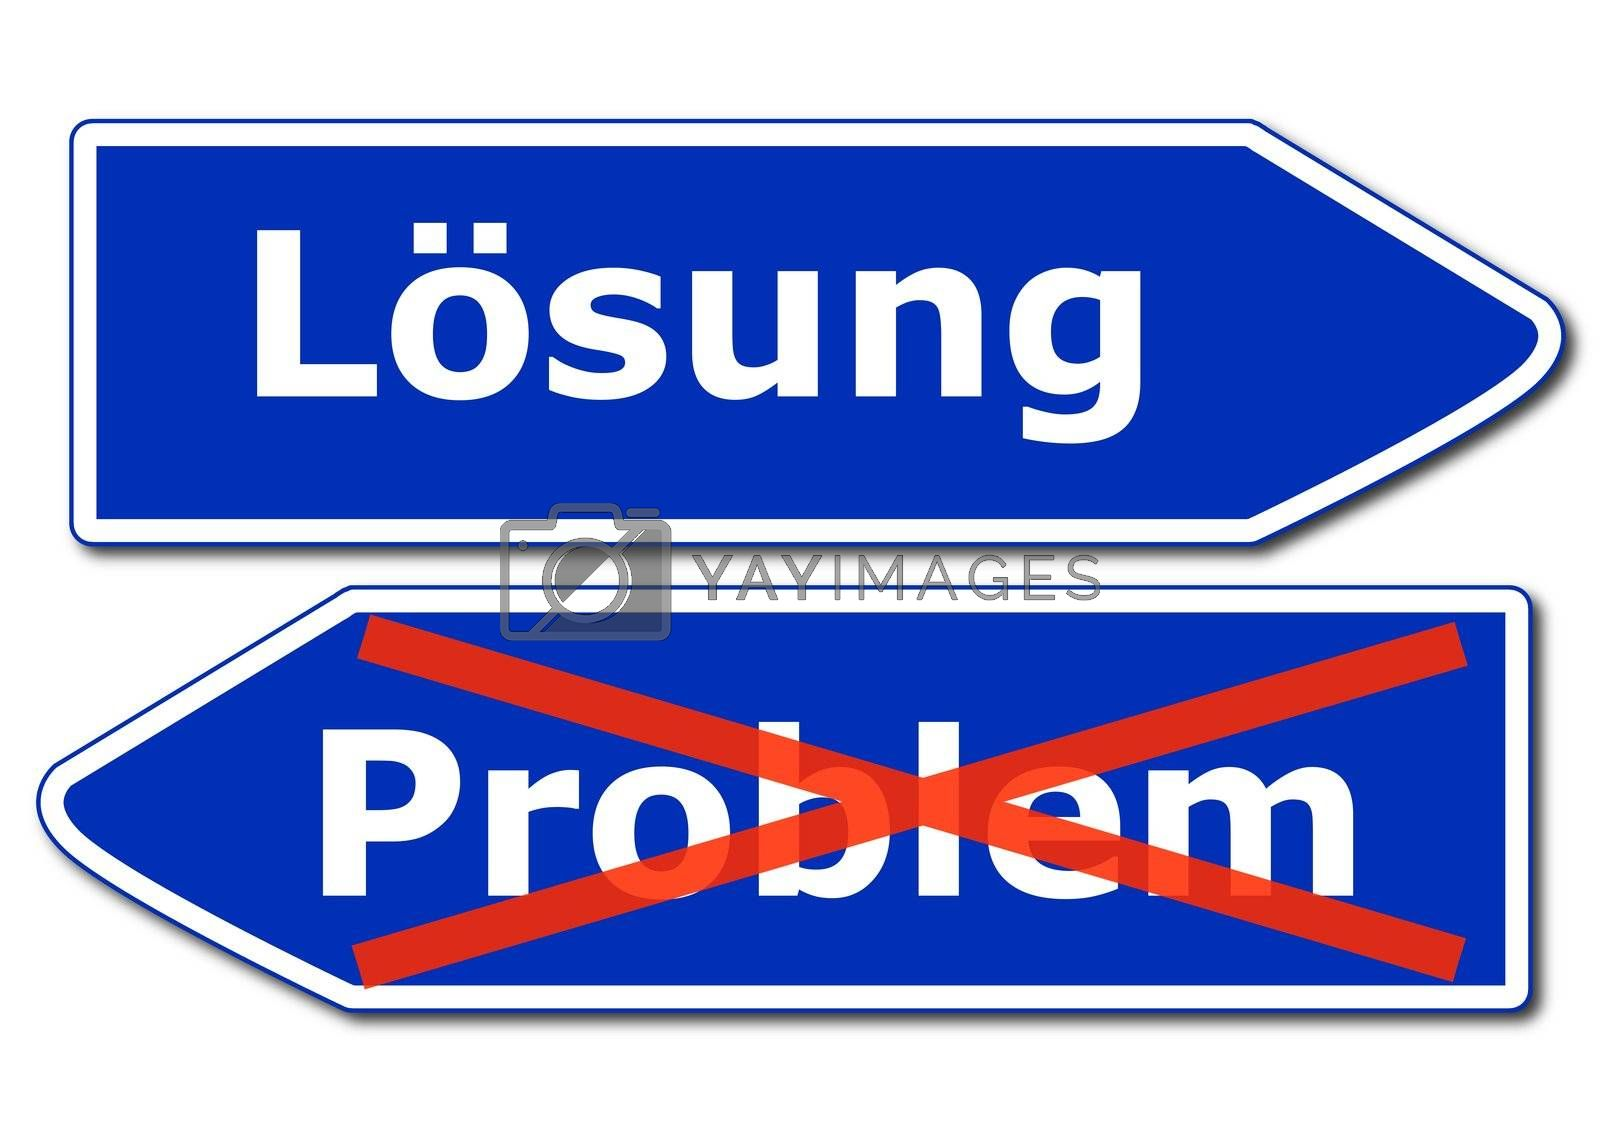 solution or problem concept with roadsign isolated on white background